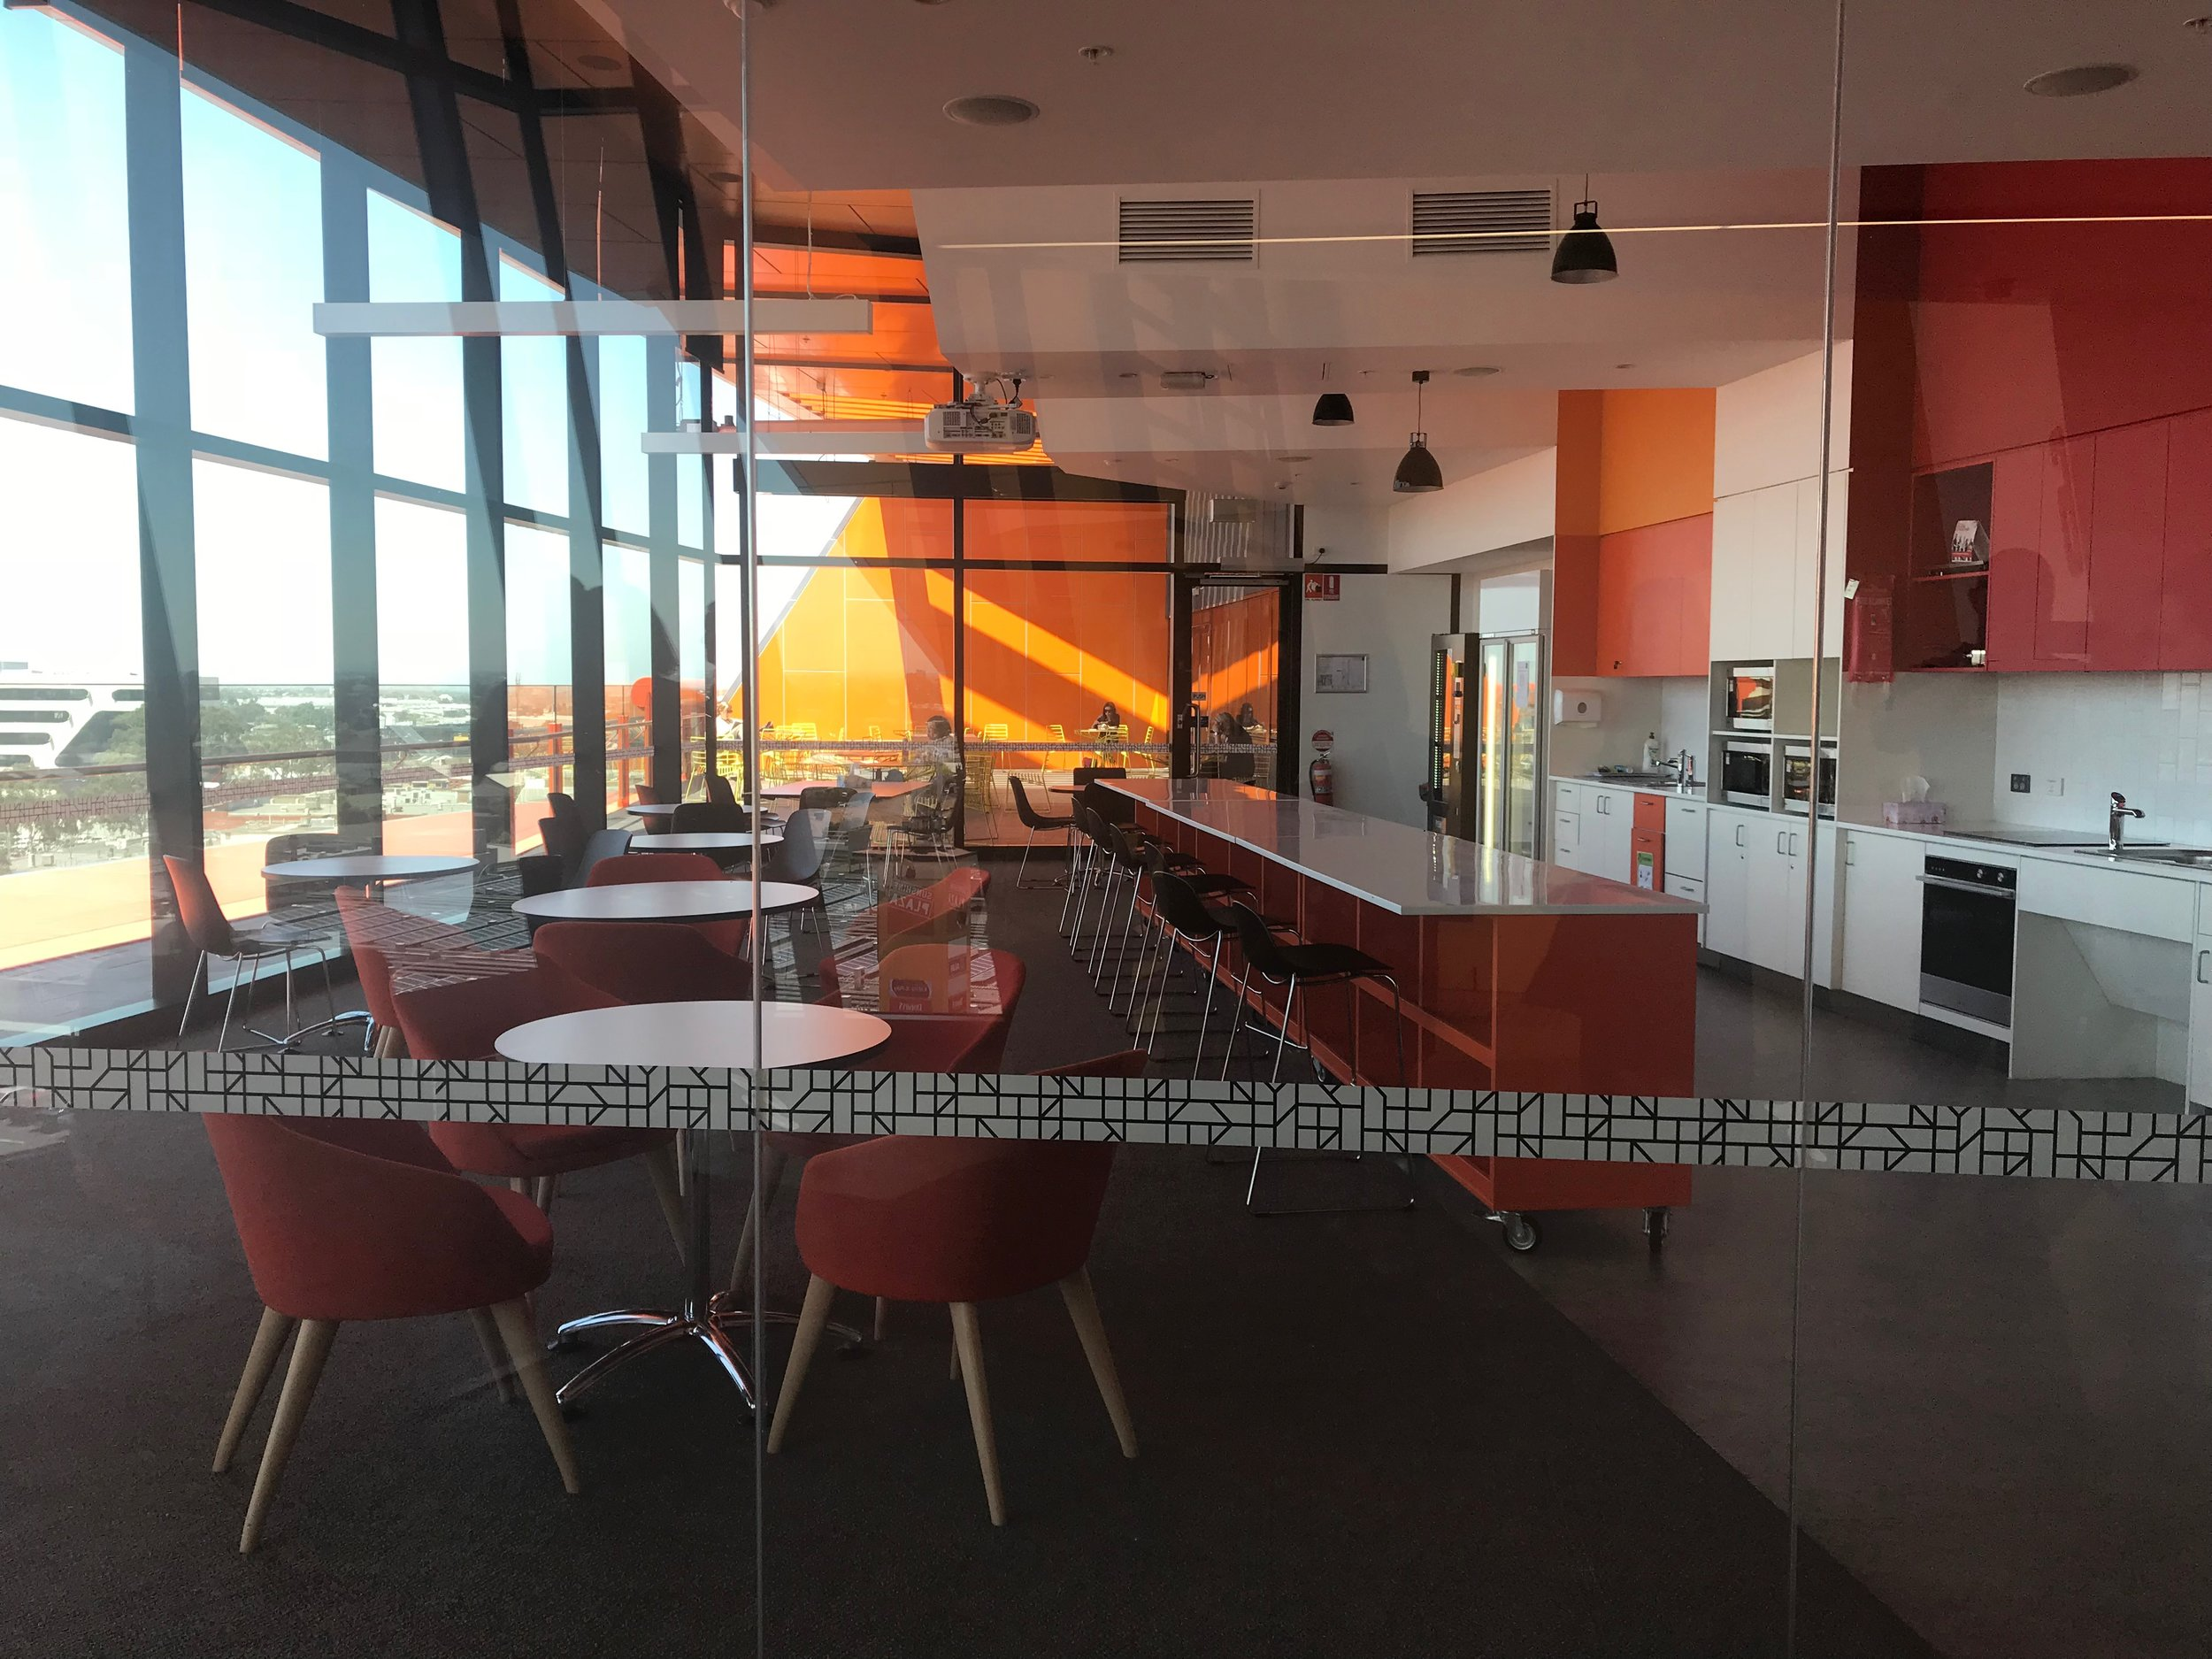 The staff kitchen, on level 4, has views towards the city and an outdoor area, encouraging staff from all parts of Council to meet eachother and spend time away from their desk for lunch.